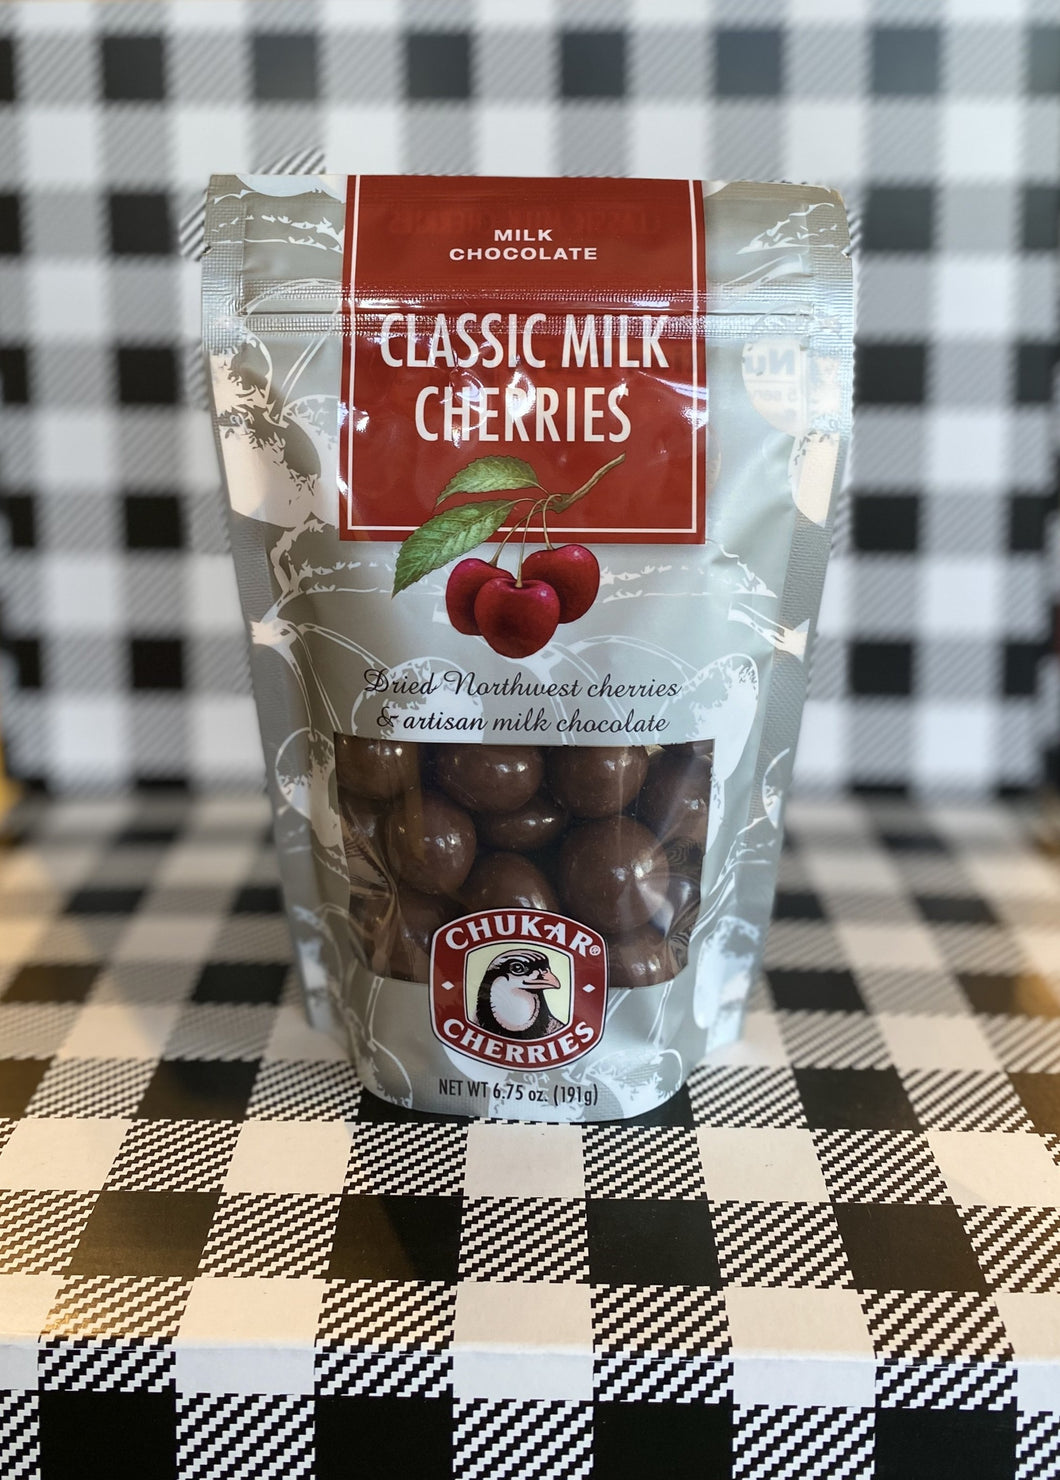 Classic Milk Cherries